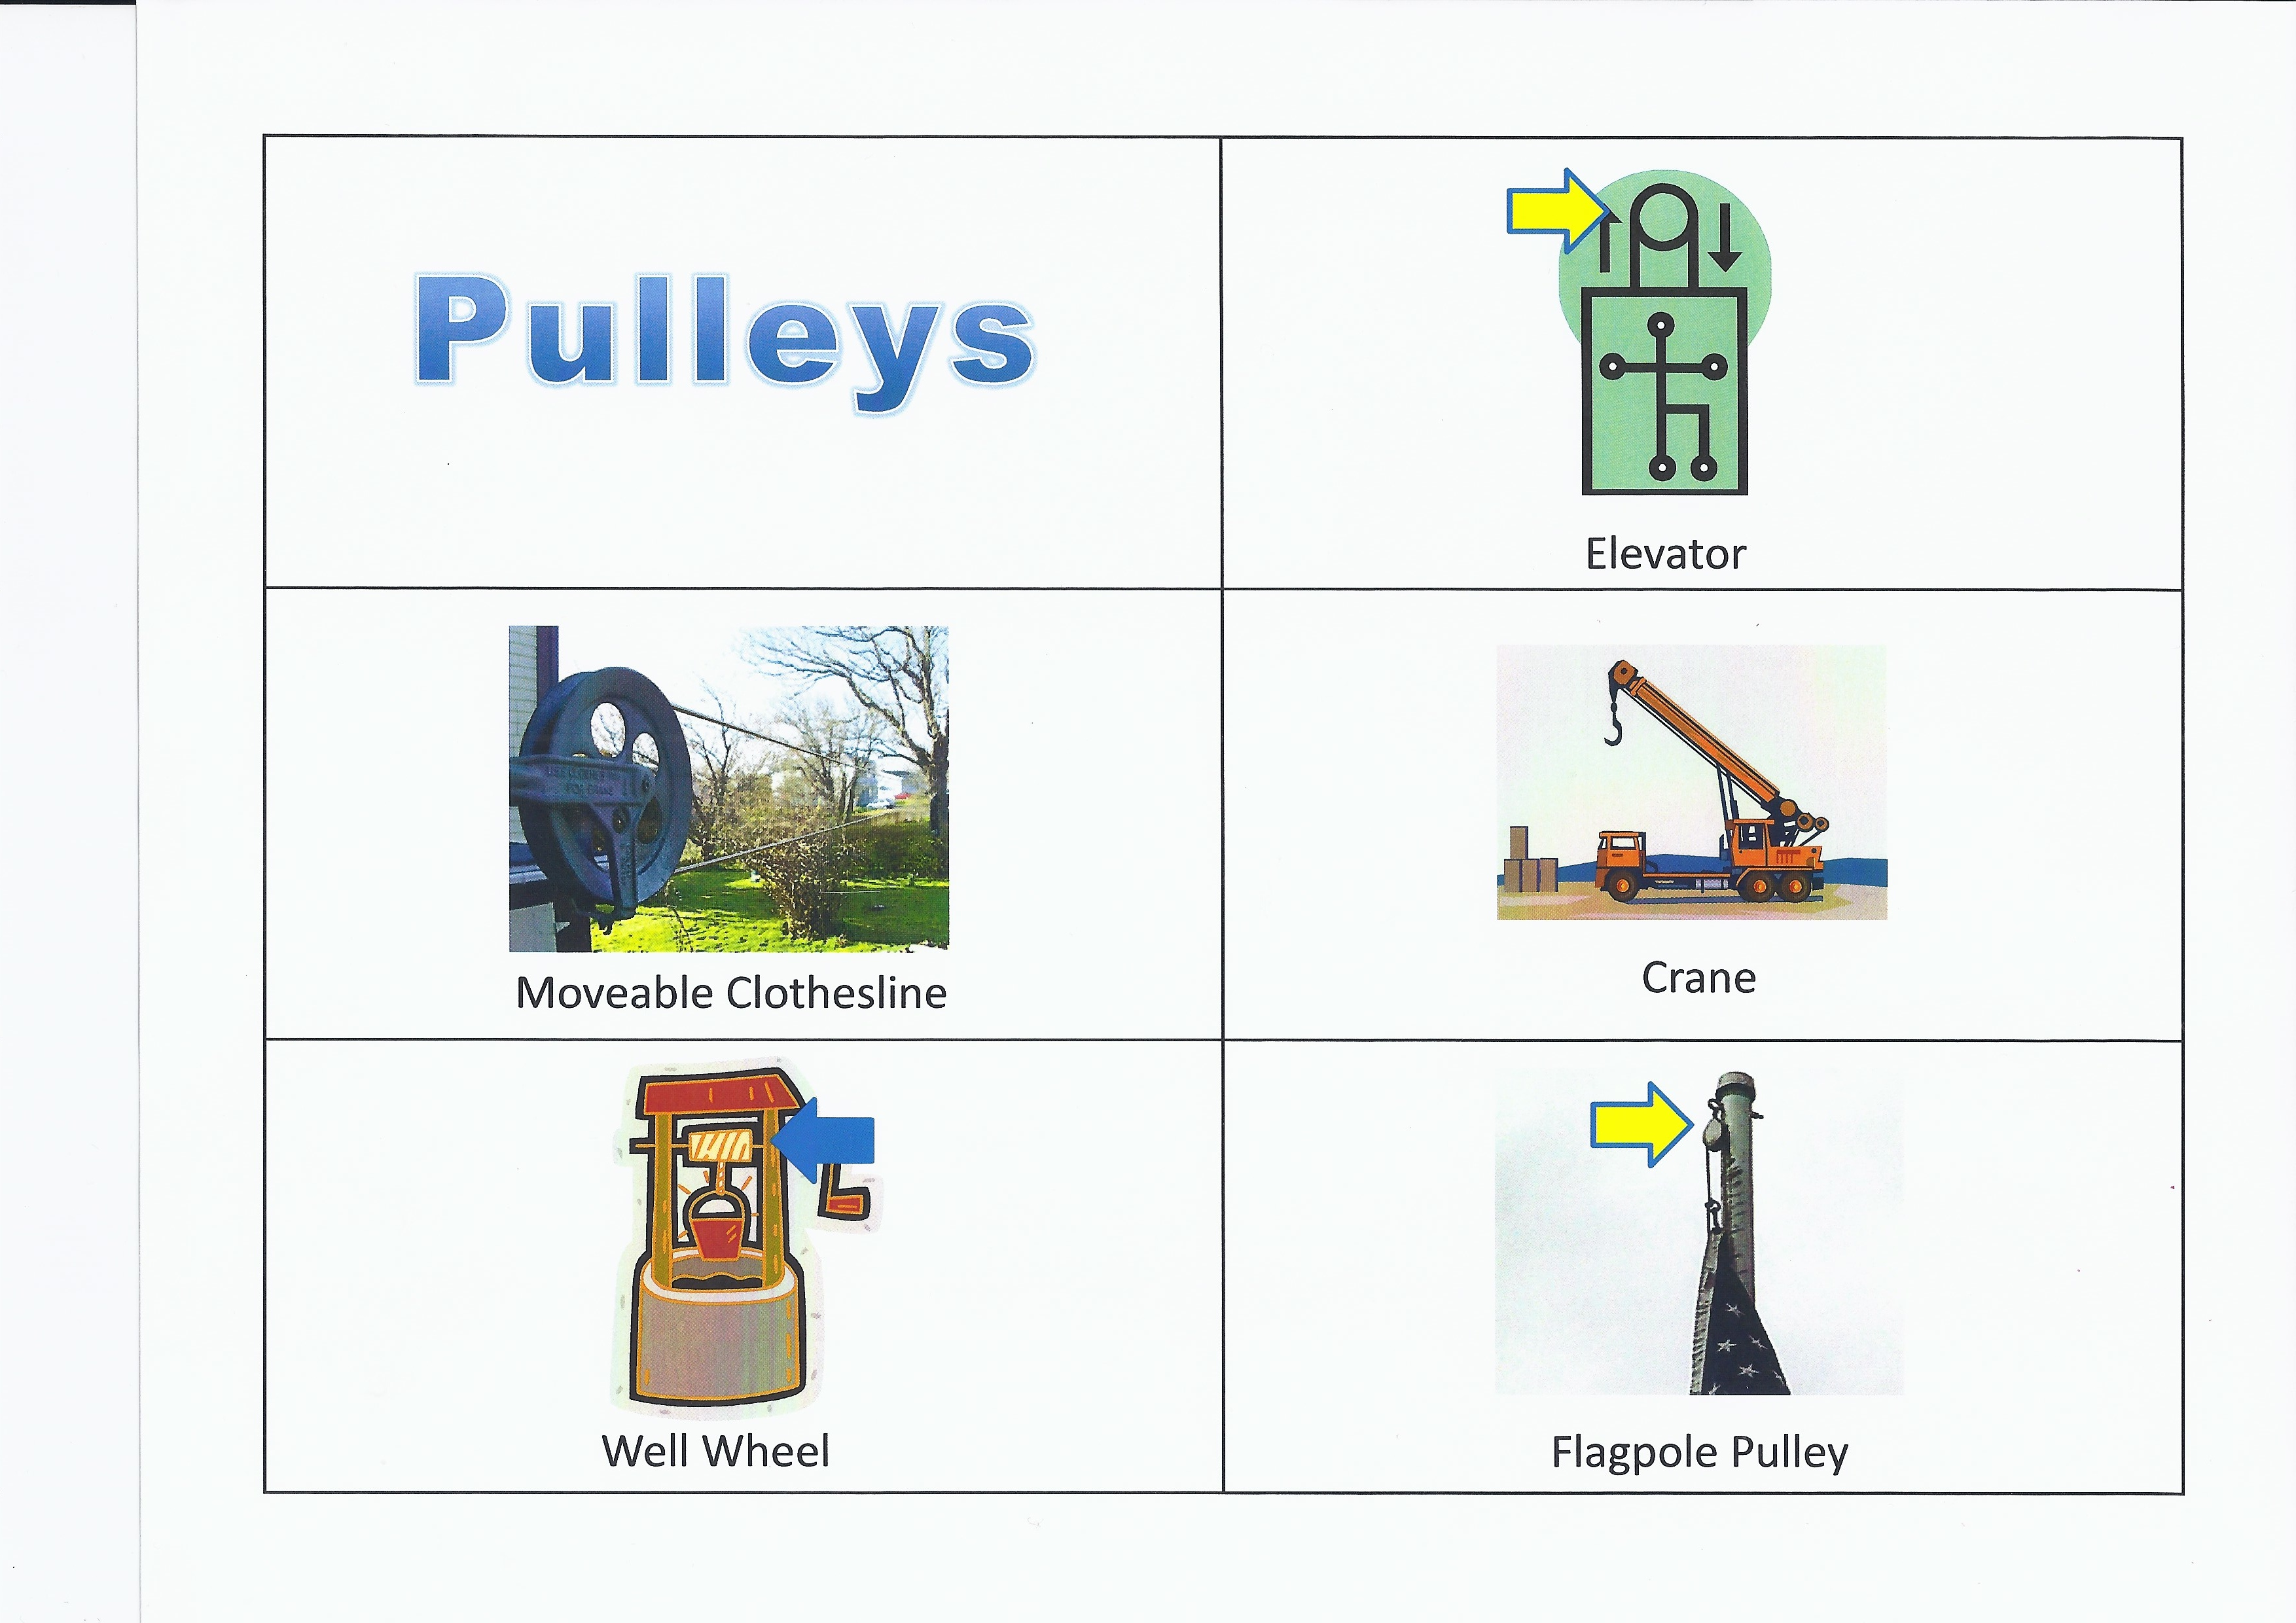 Pulley examples royalty free stock Pulley examples - ClipartFest royalty free stock